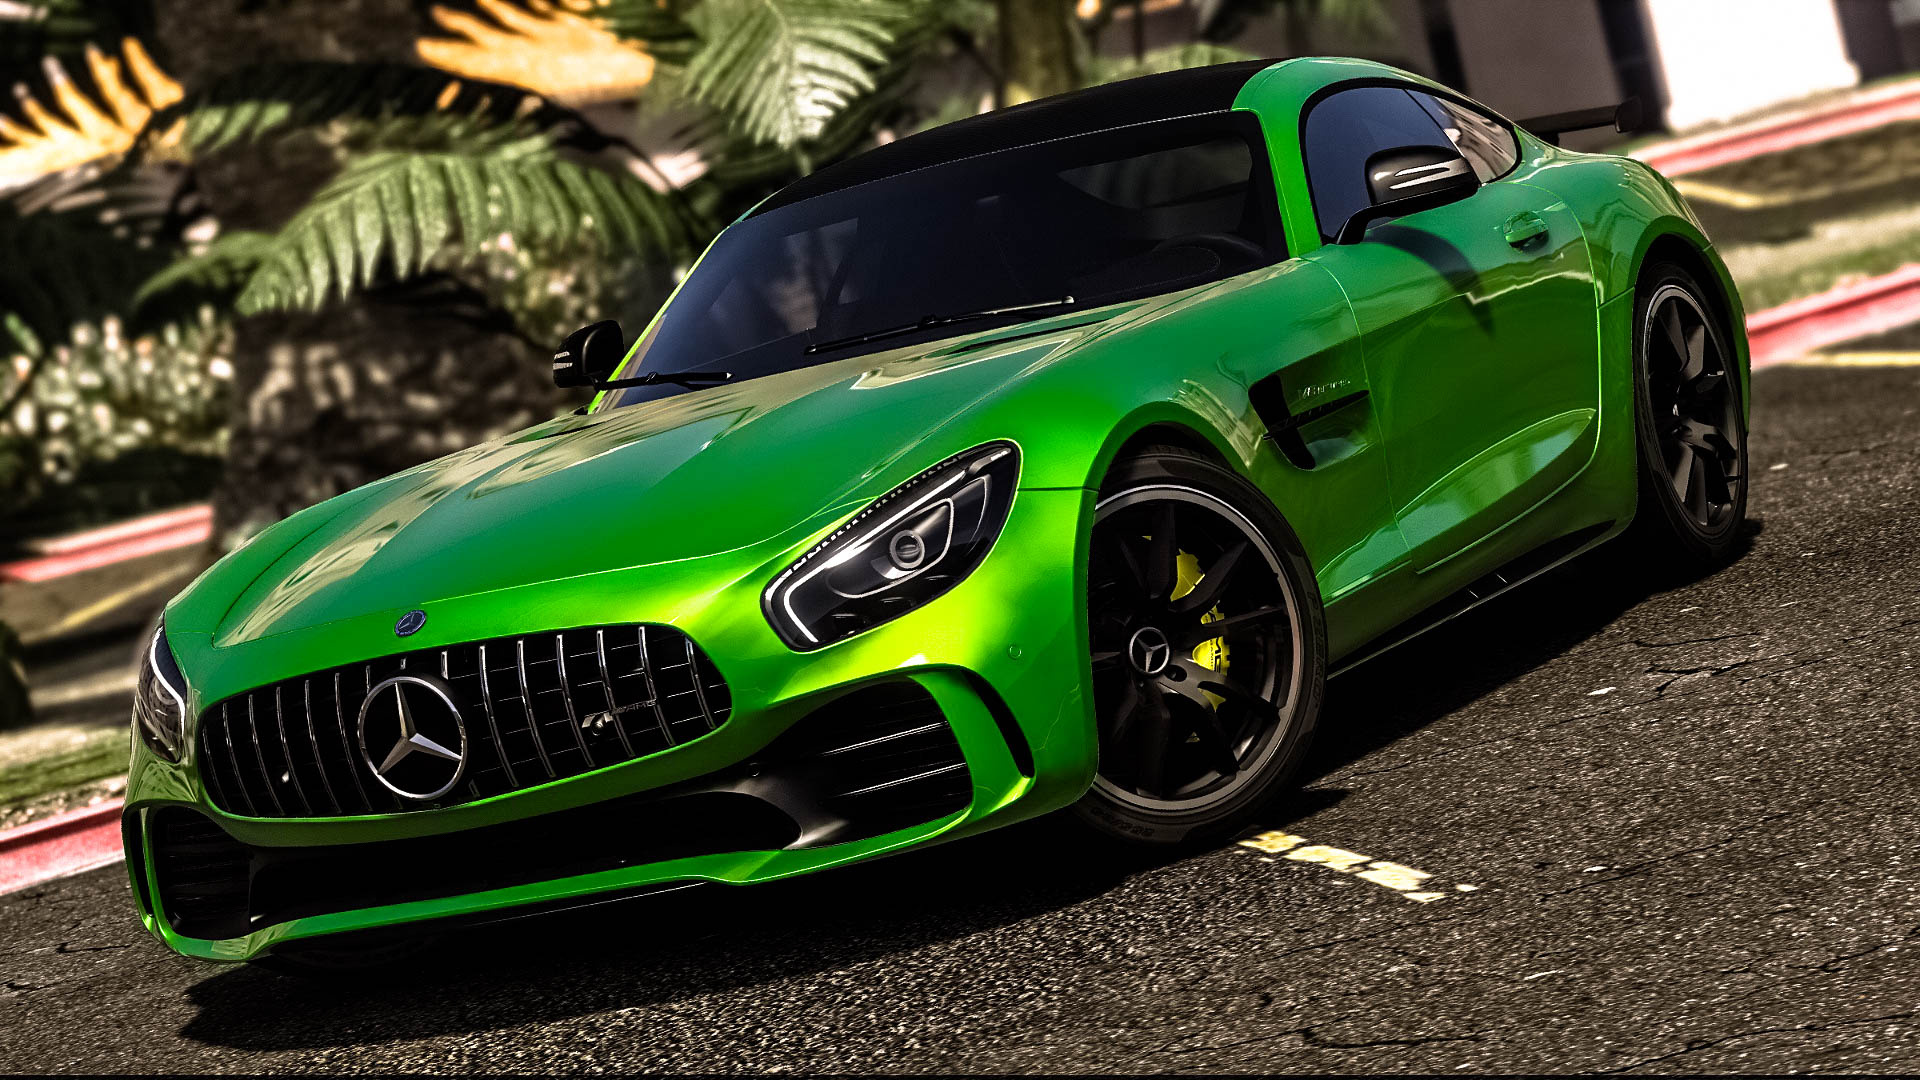 https://img.gta5-mods.com/q95/images/mercedes-benz-amg-gt-r-2017/26803f-GTA5%2001-07-2017%2013-52-29-712.jpg